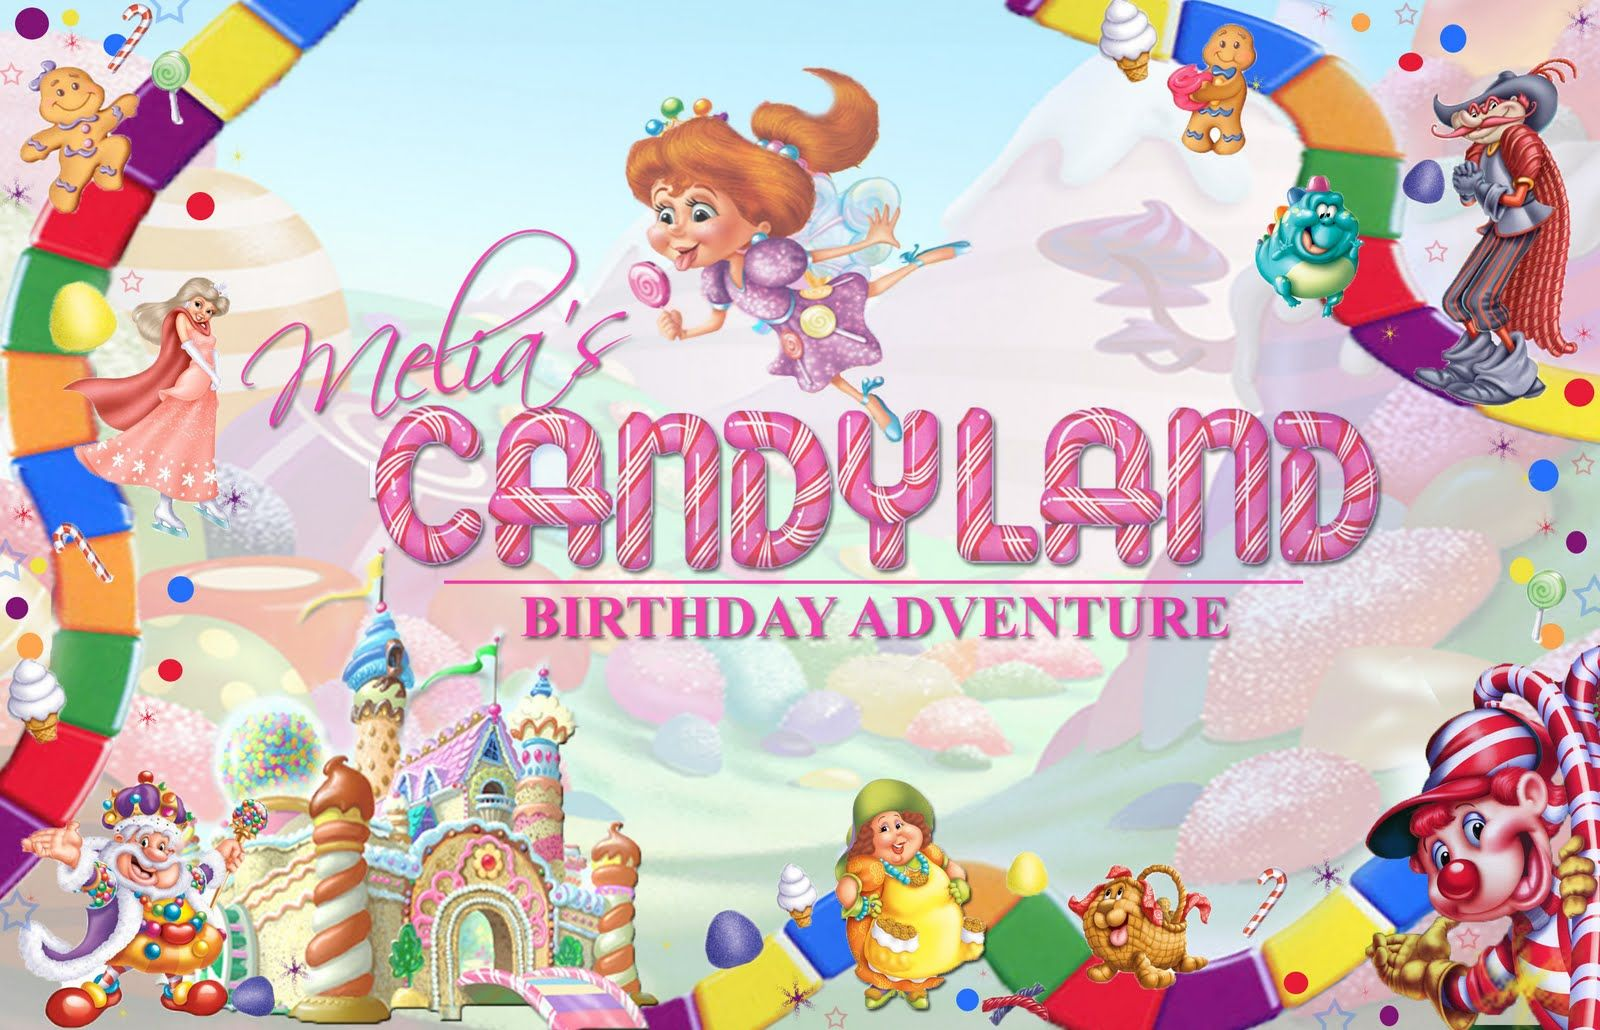 candyland free invite template - Google Search | Megs 18th bday ...